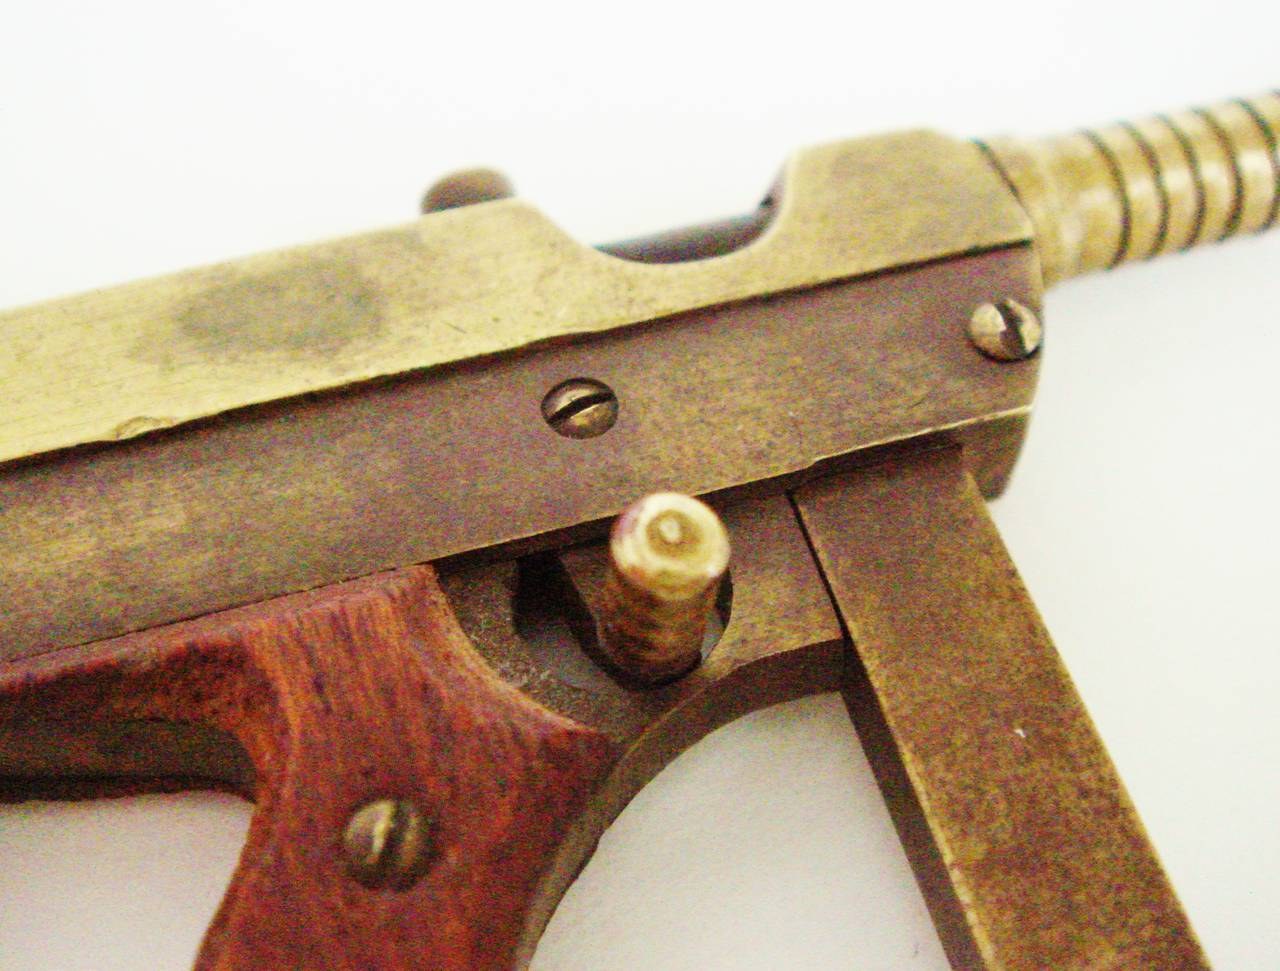 Carved Exquisite Trench Art Miniature Brass and Wood Thomson M1928A Sub Machine Gun For Sale